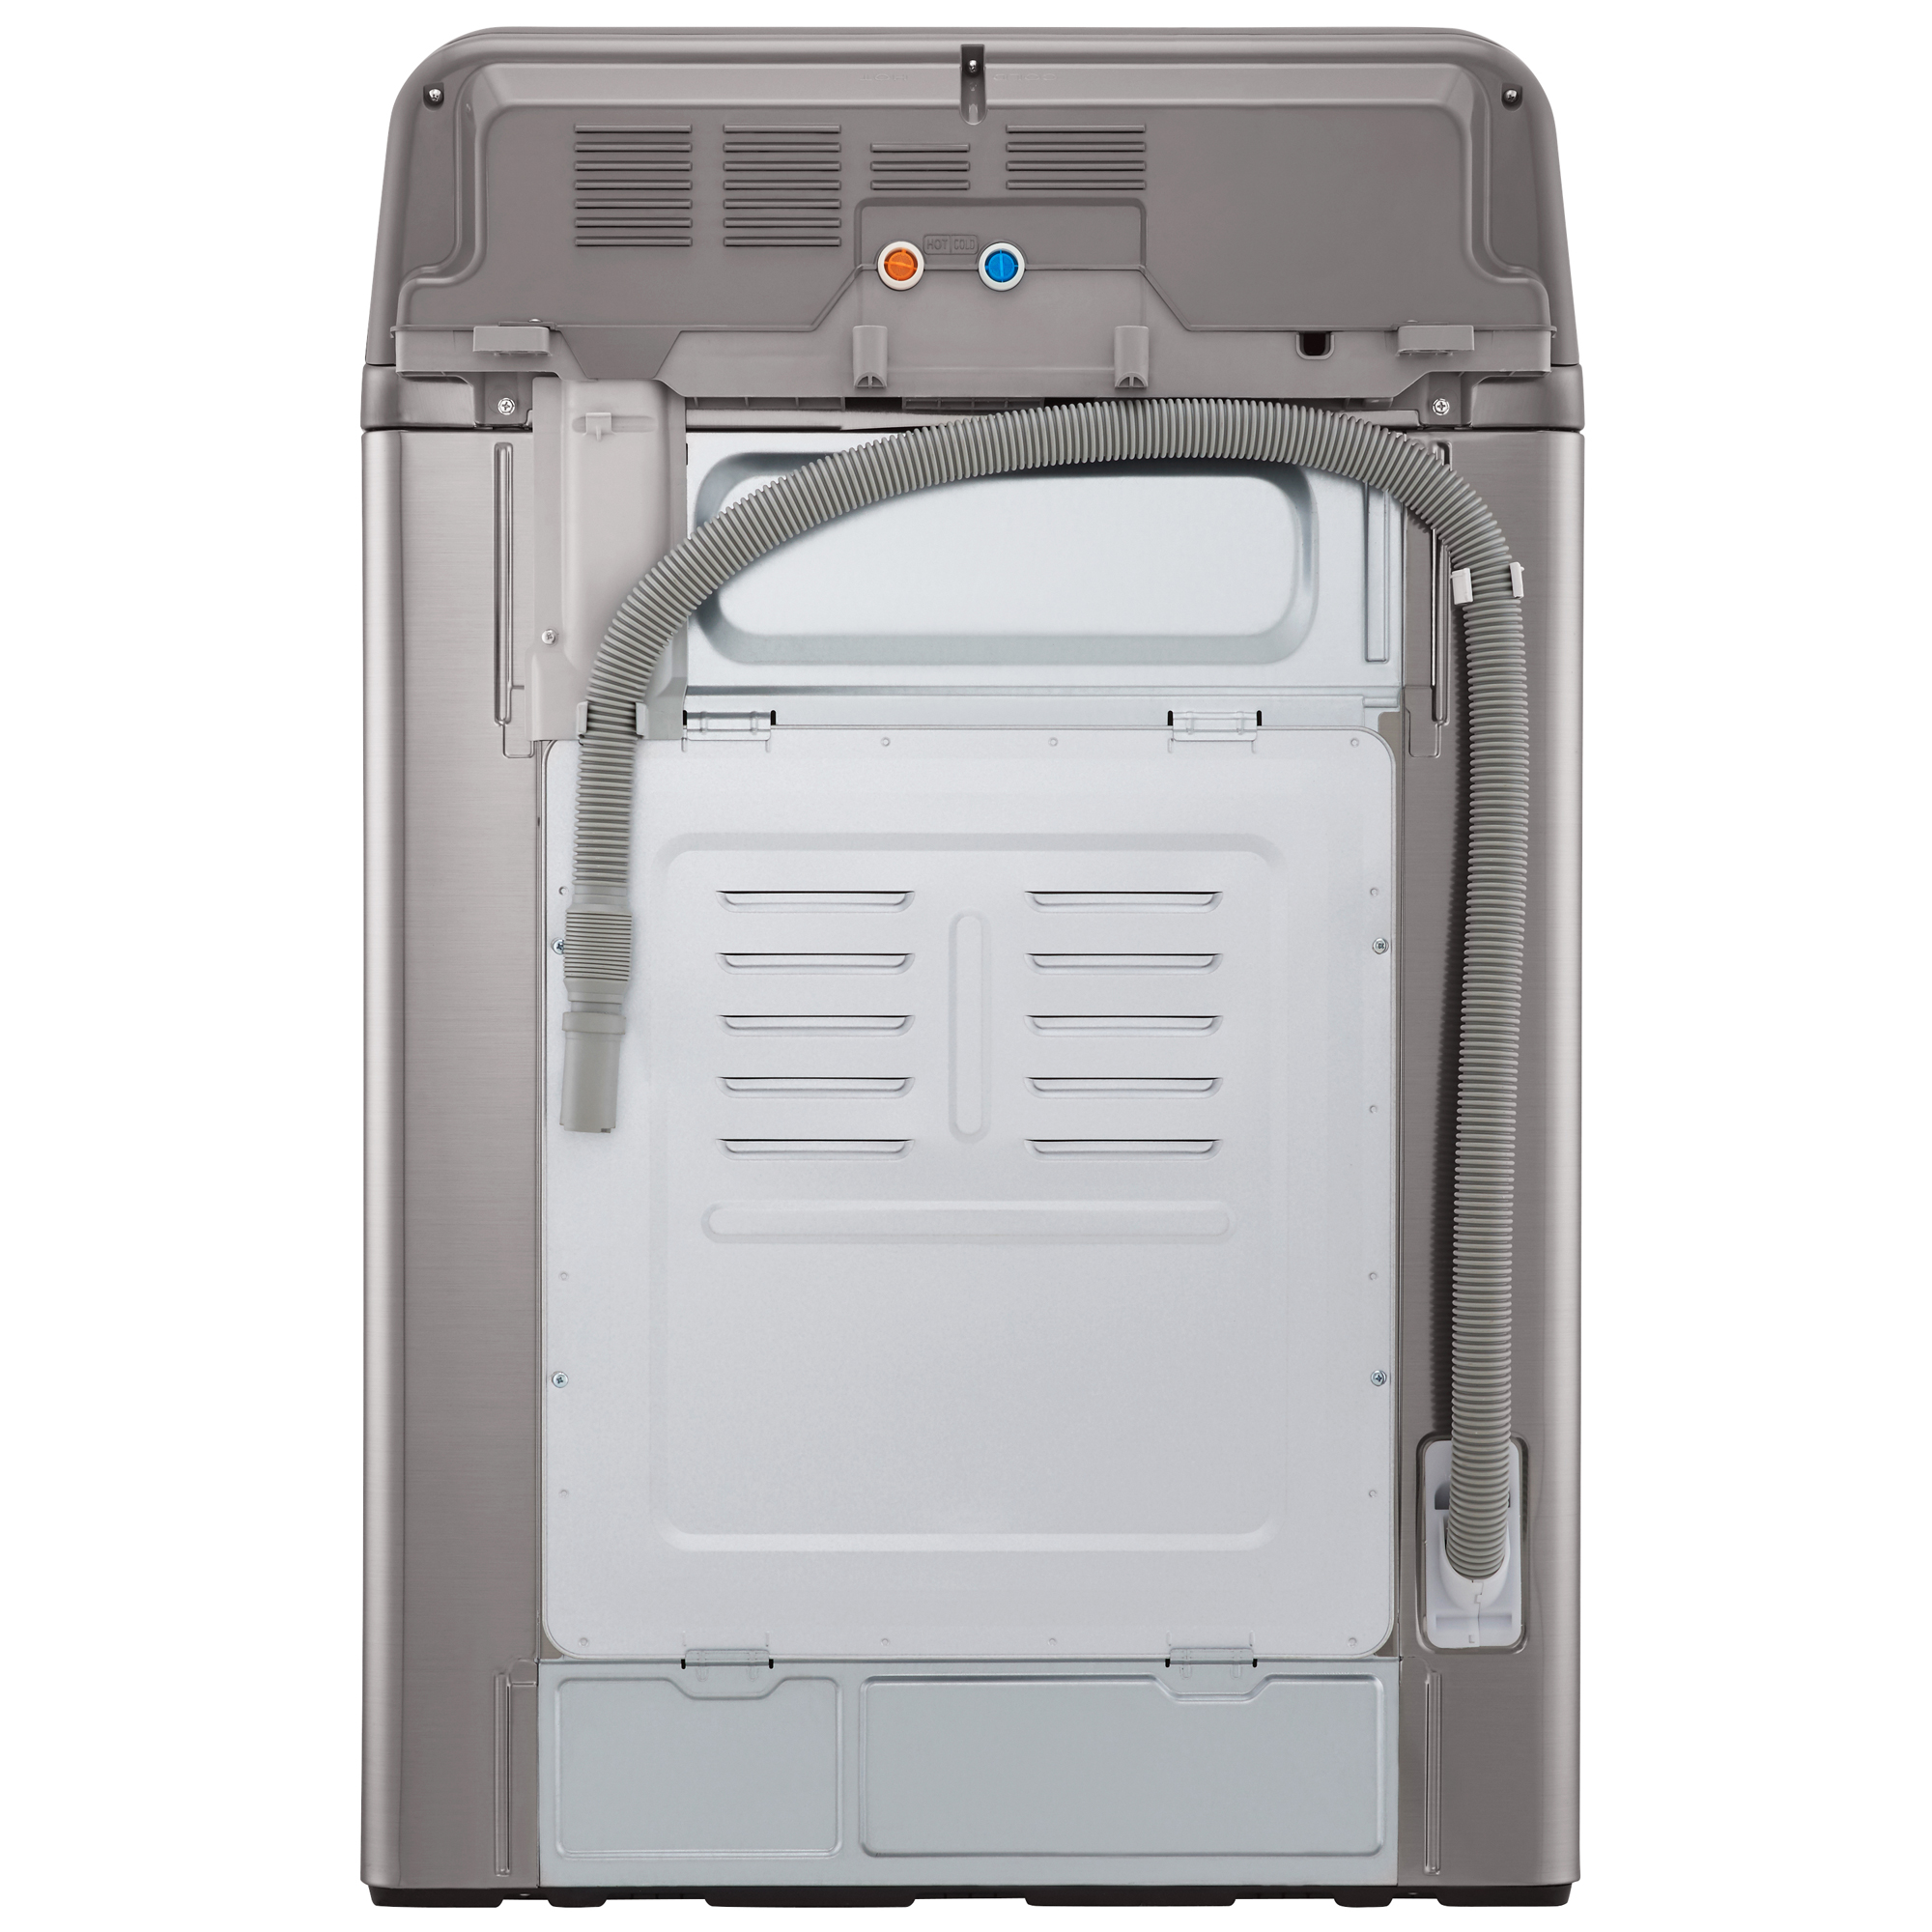 LG WT7700HVA 5.7 cu.ft.. Top Load Washer w/ TurboWash® Technology – Graphite Steel